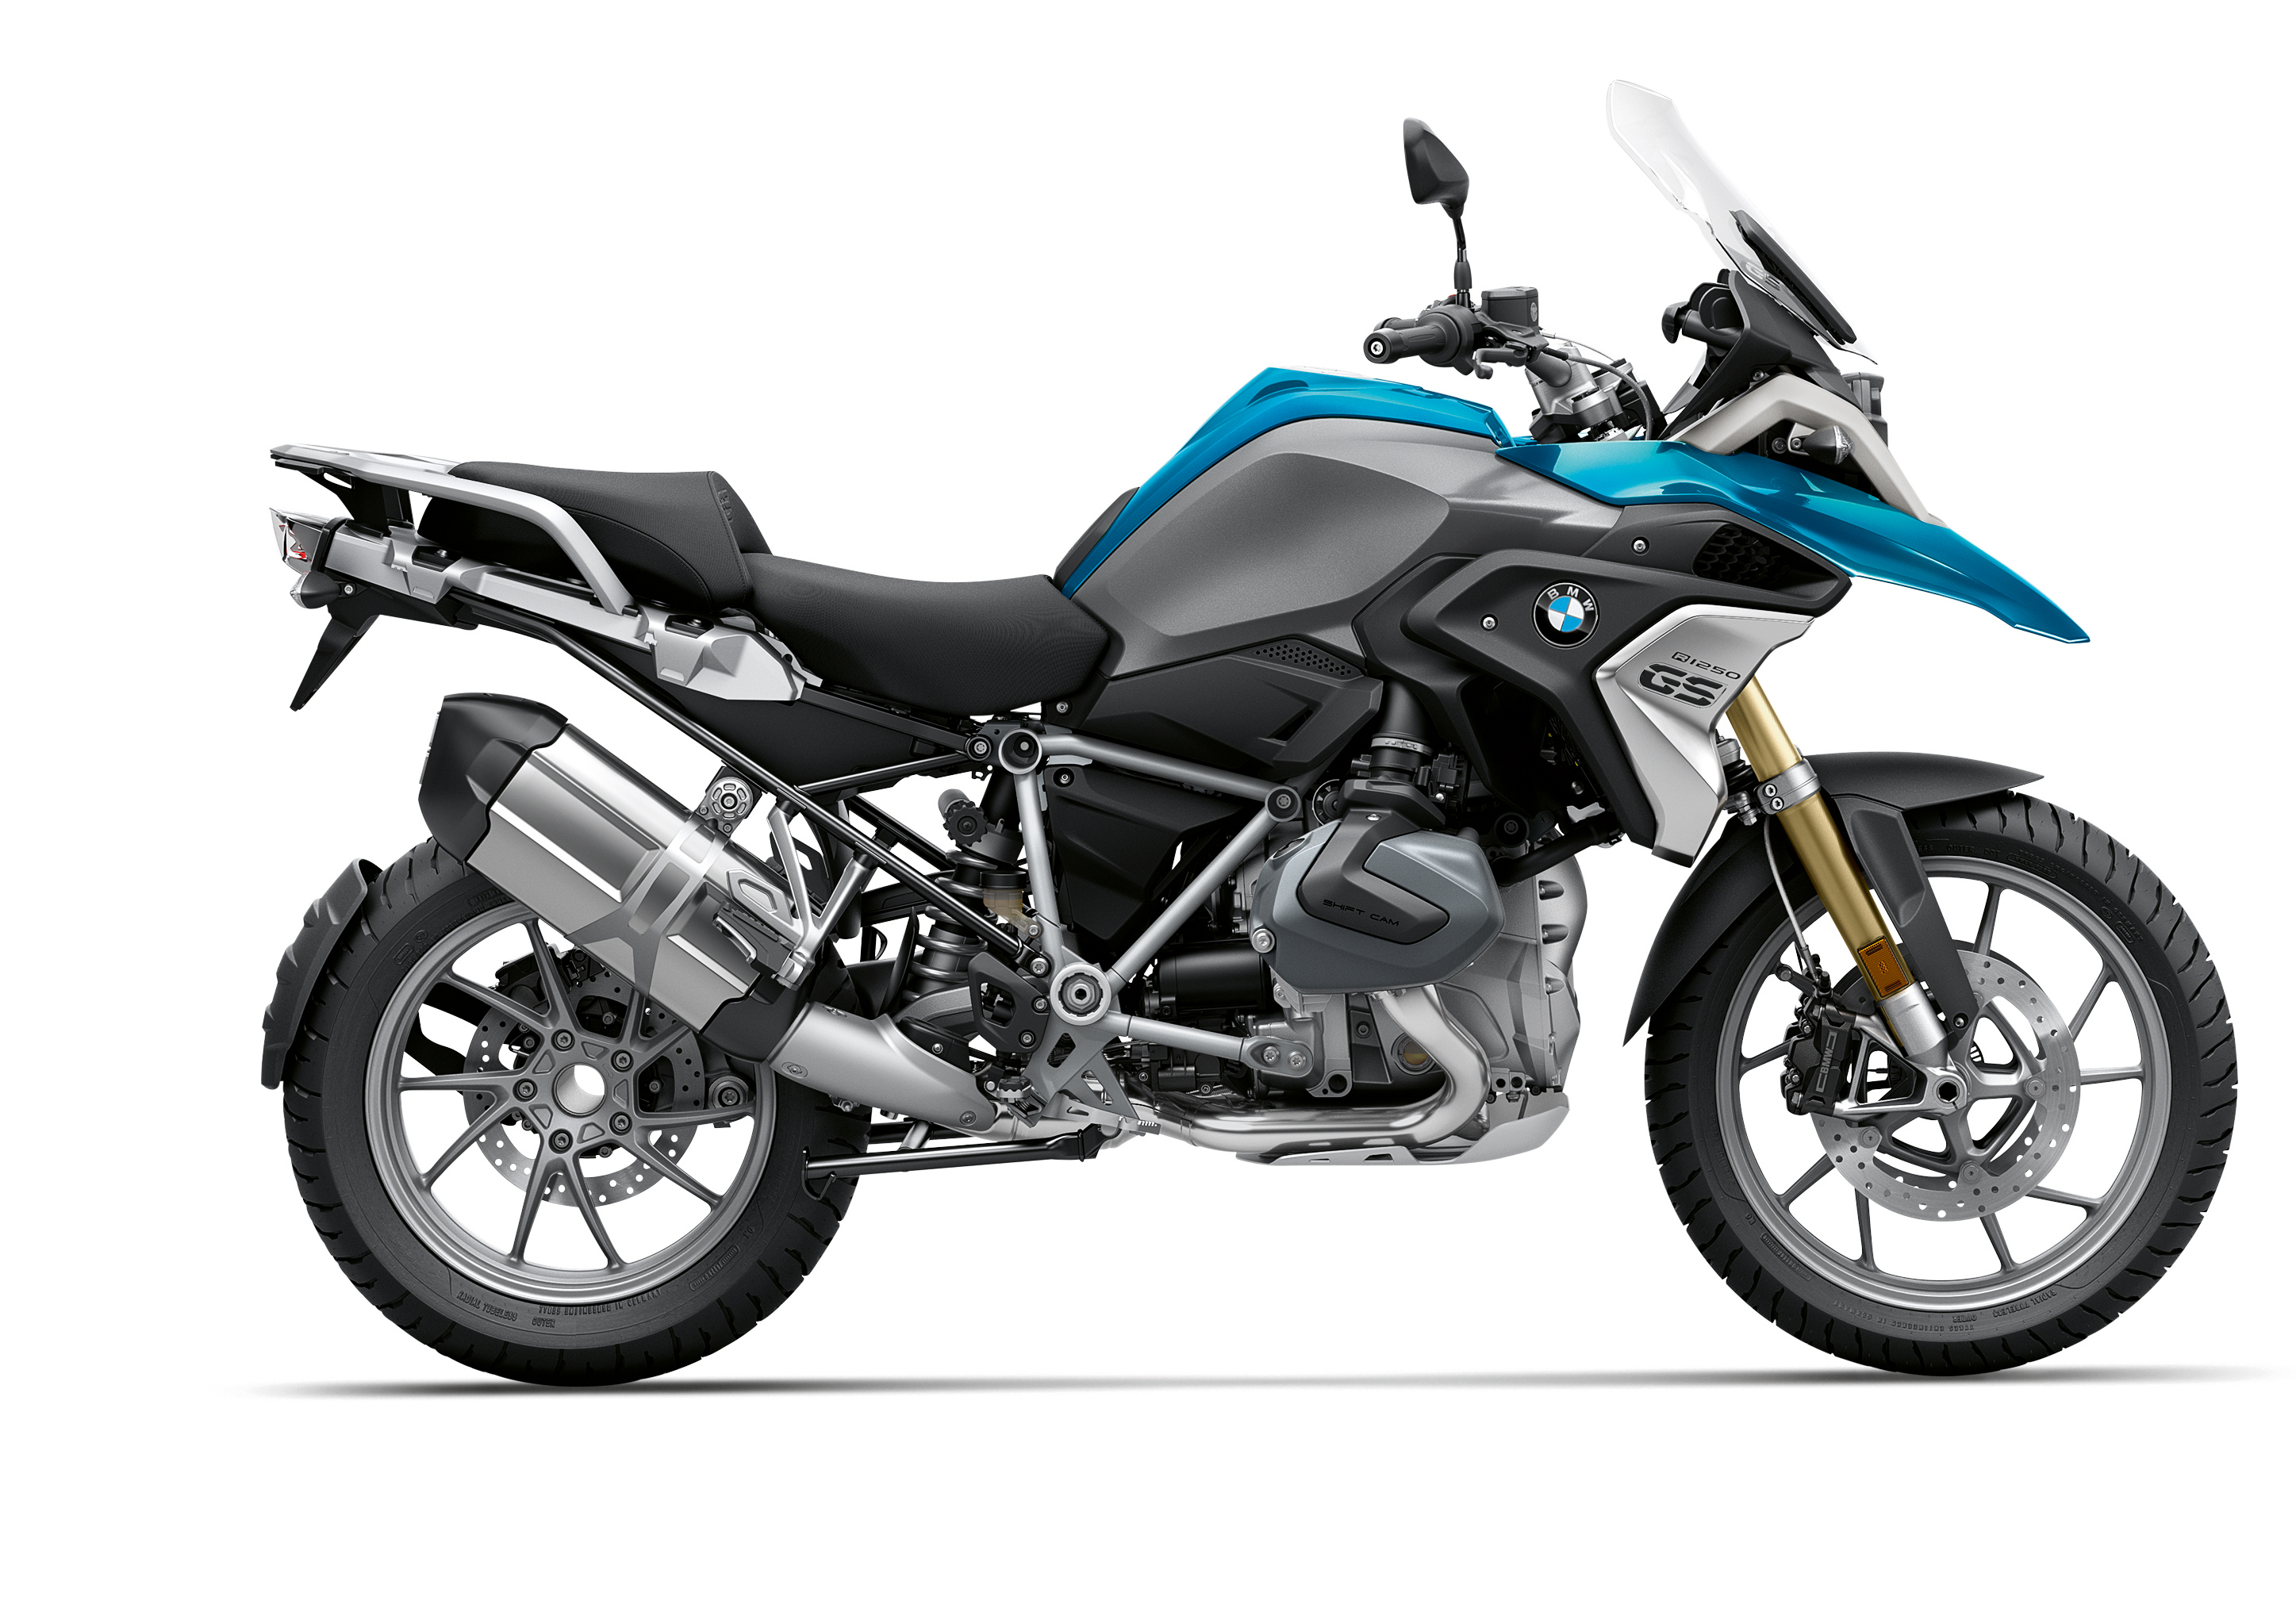 R 1250 GS Cosmic Blue metallic